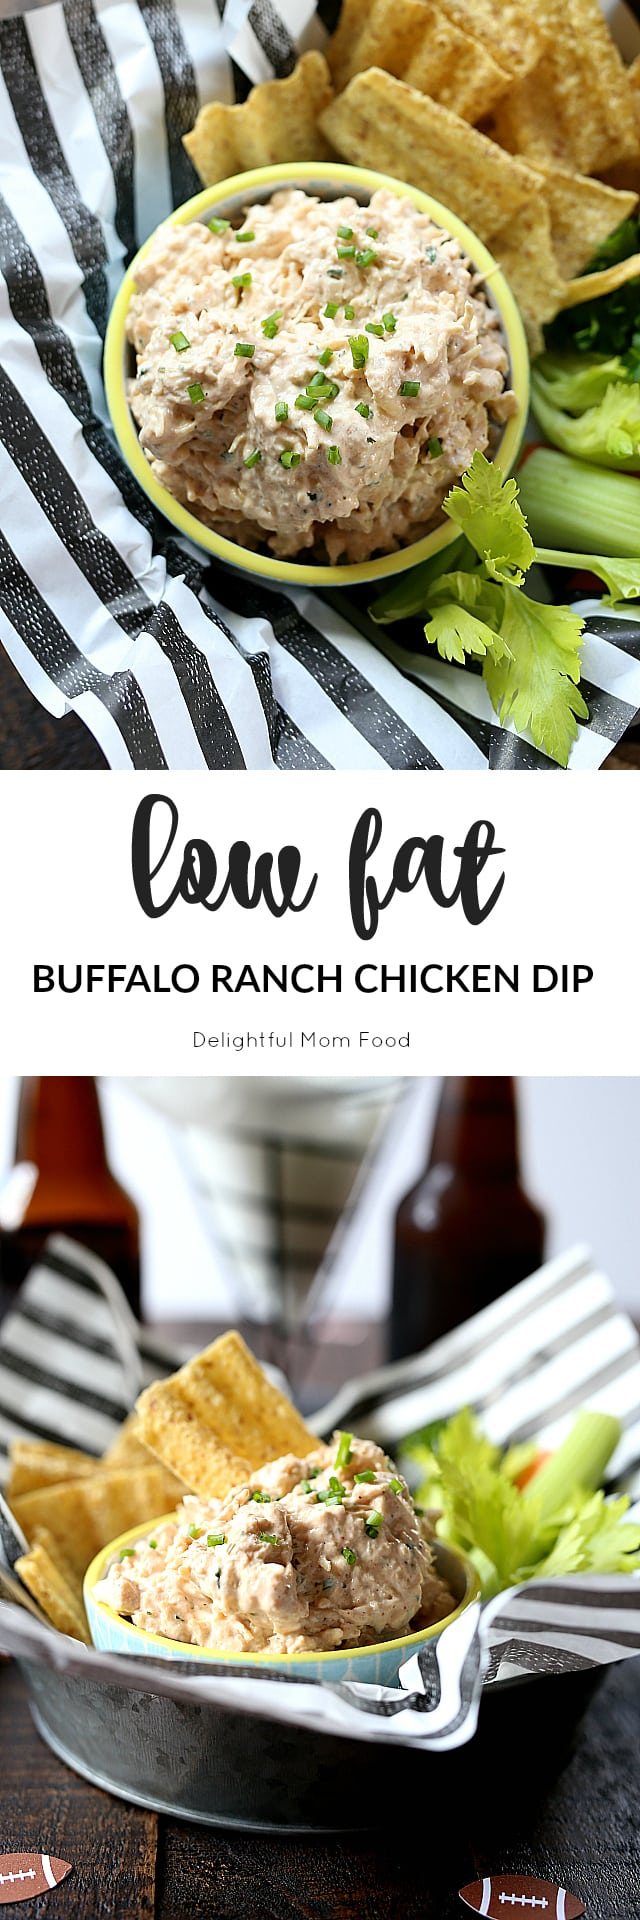 Healthy Buffalo Ranch Chicken Dip